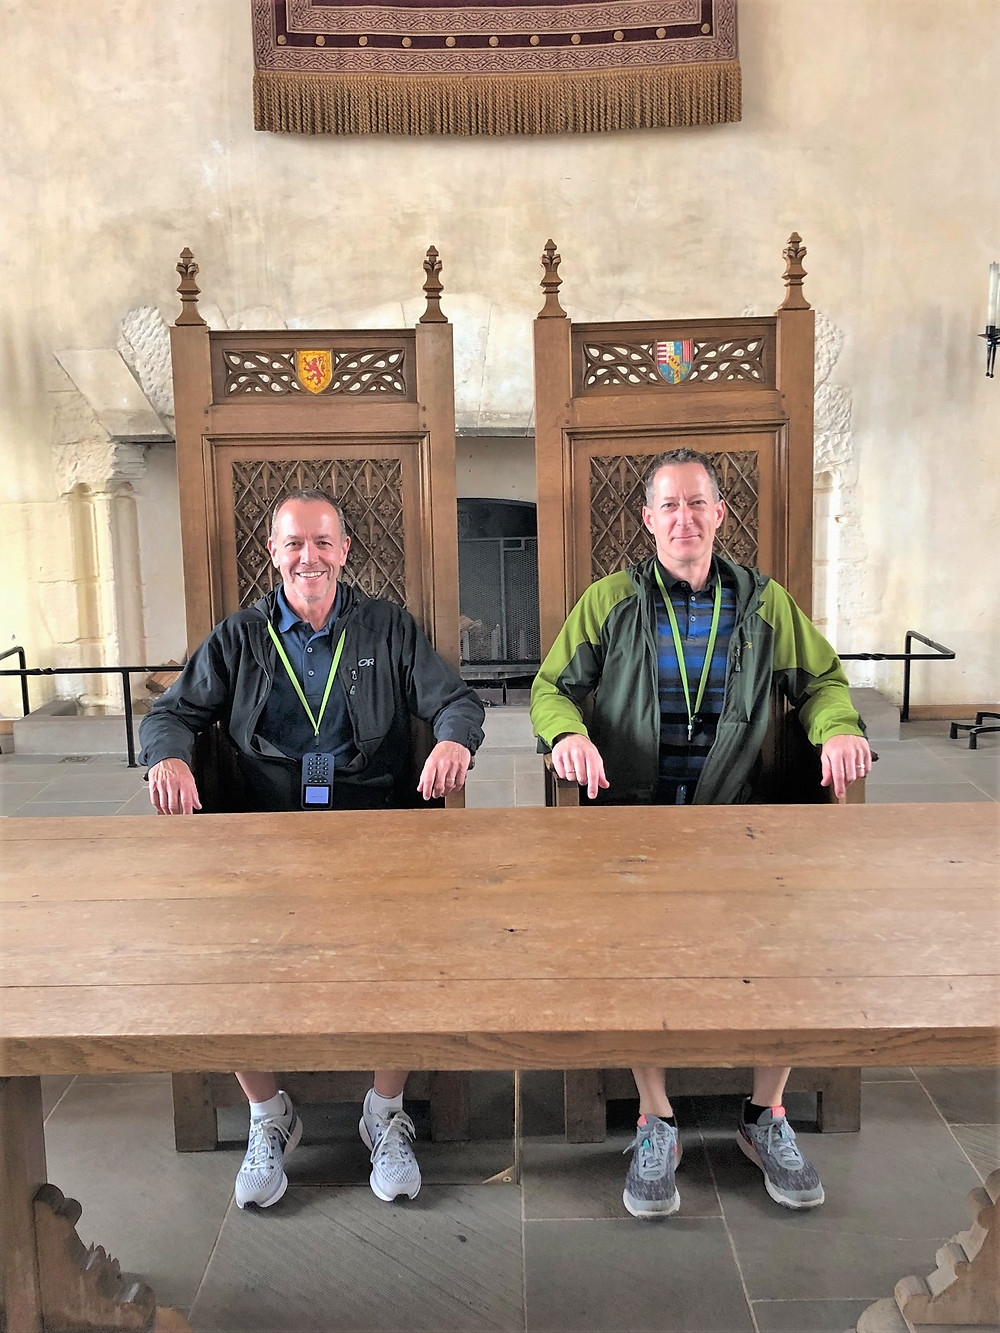 The royal thrones at the head of the table in the Great Hall in Stirling Castle